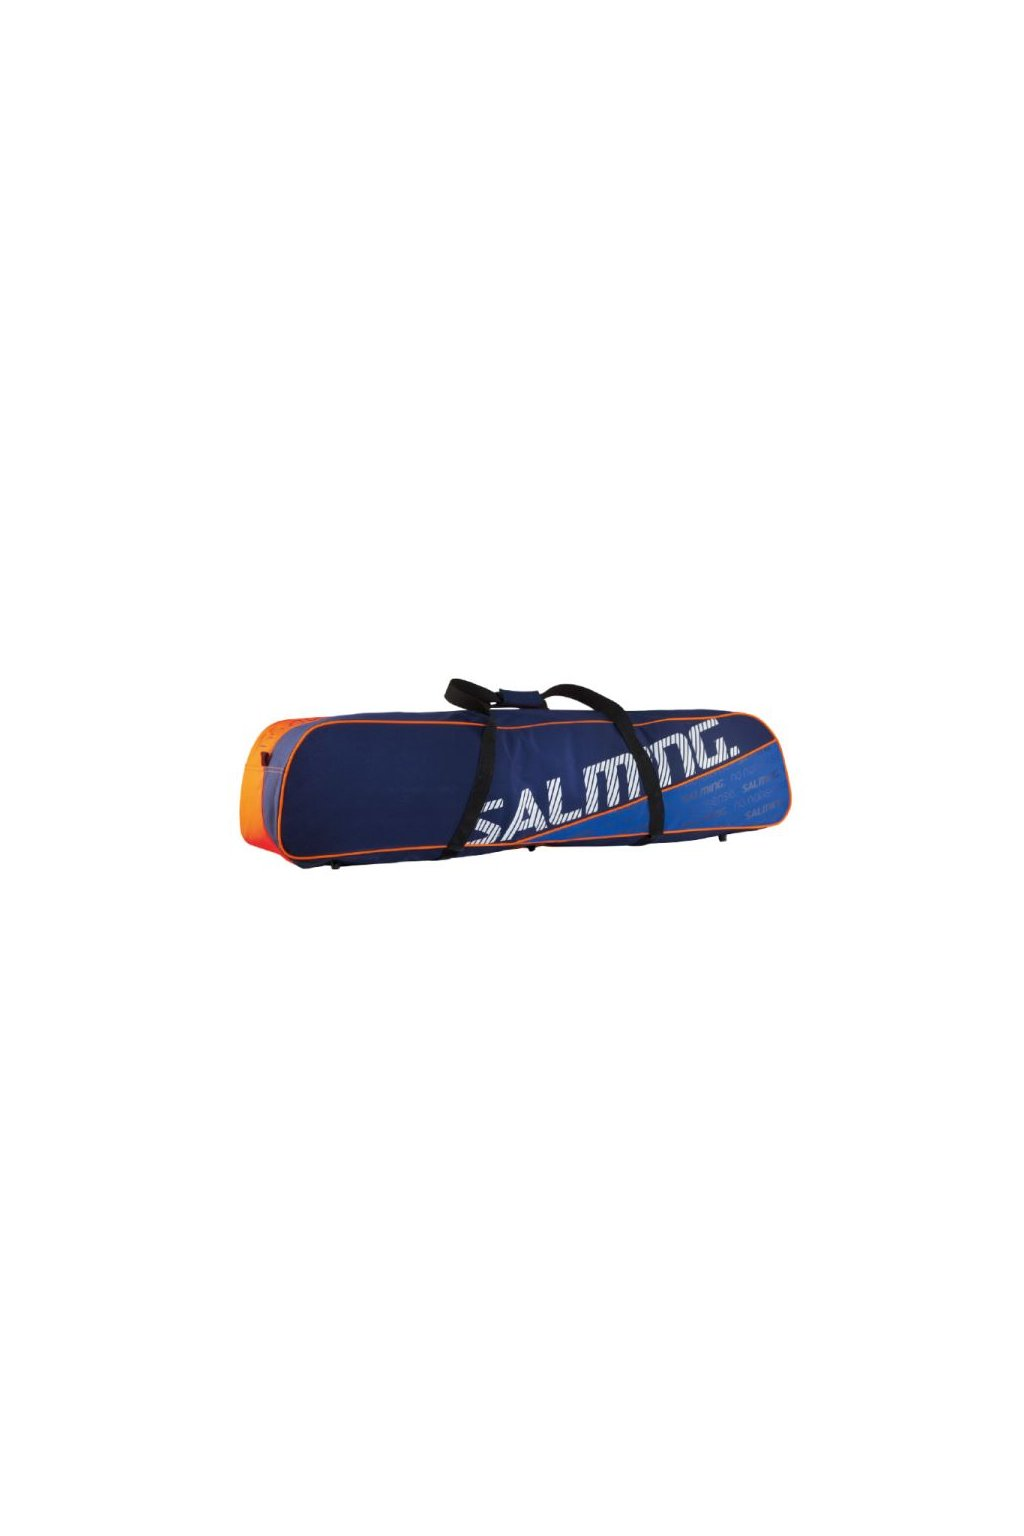 salming tour toolbag sr navy orange